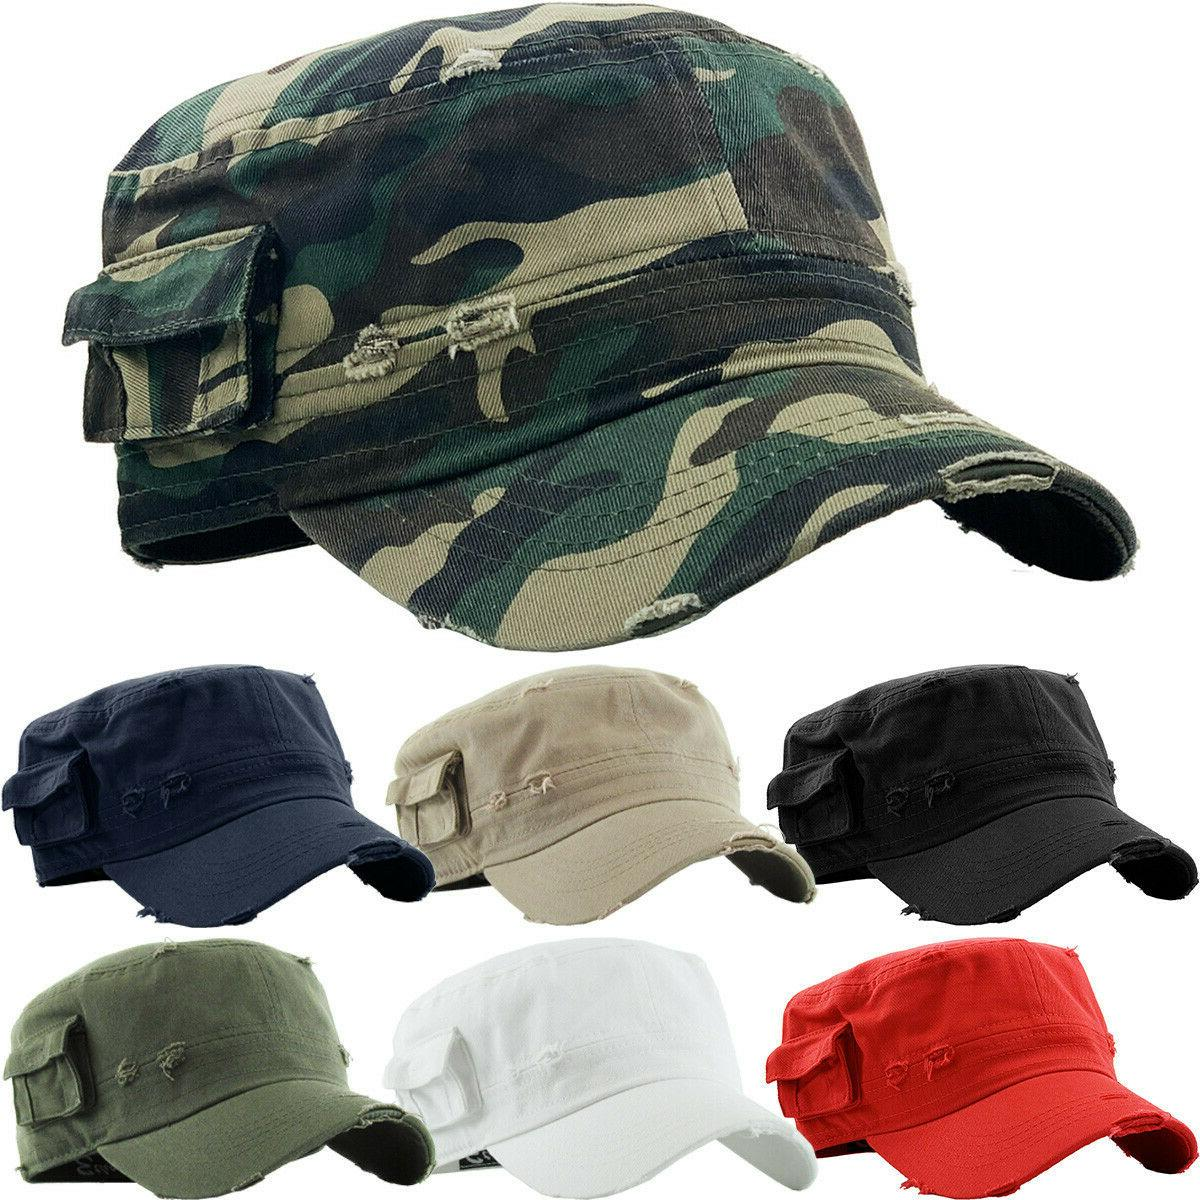 kbethos cadet fitted caps army military hats